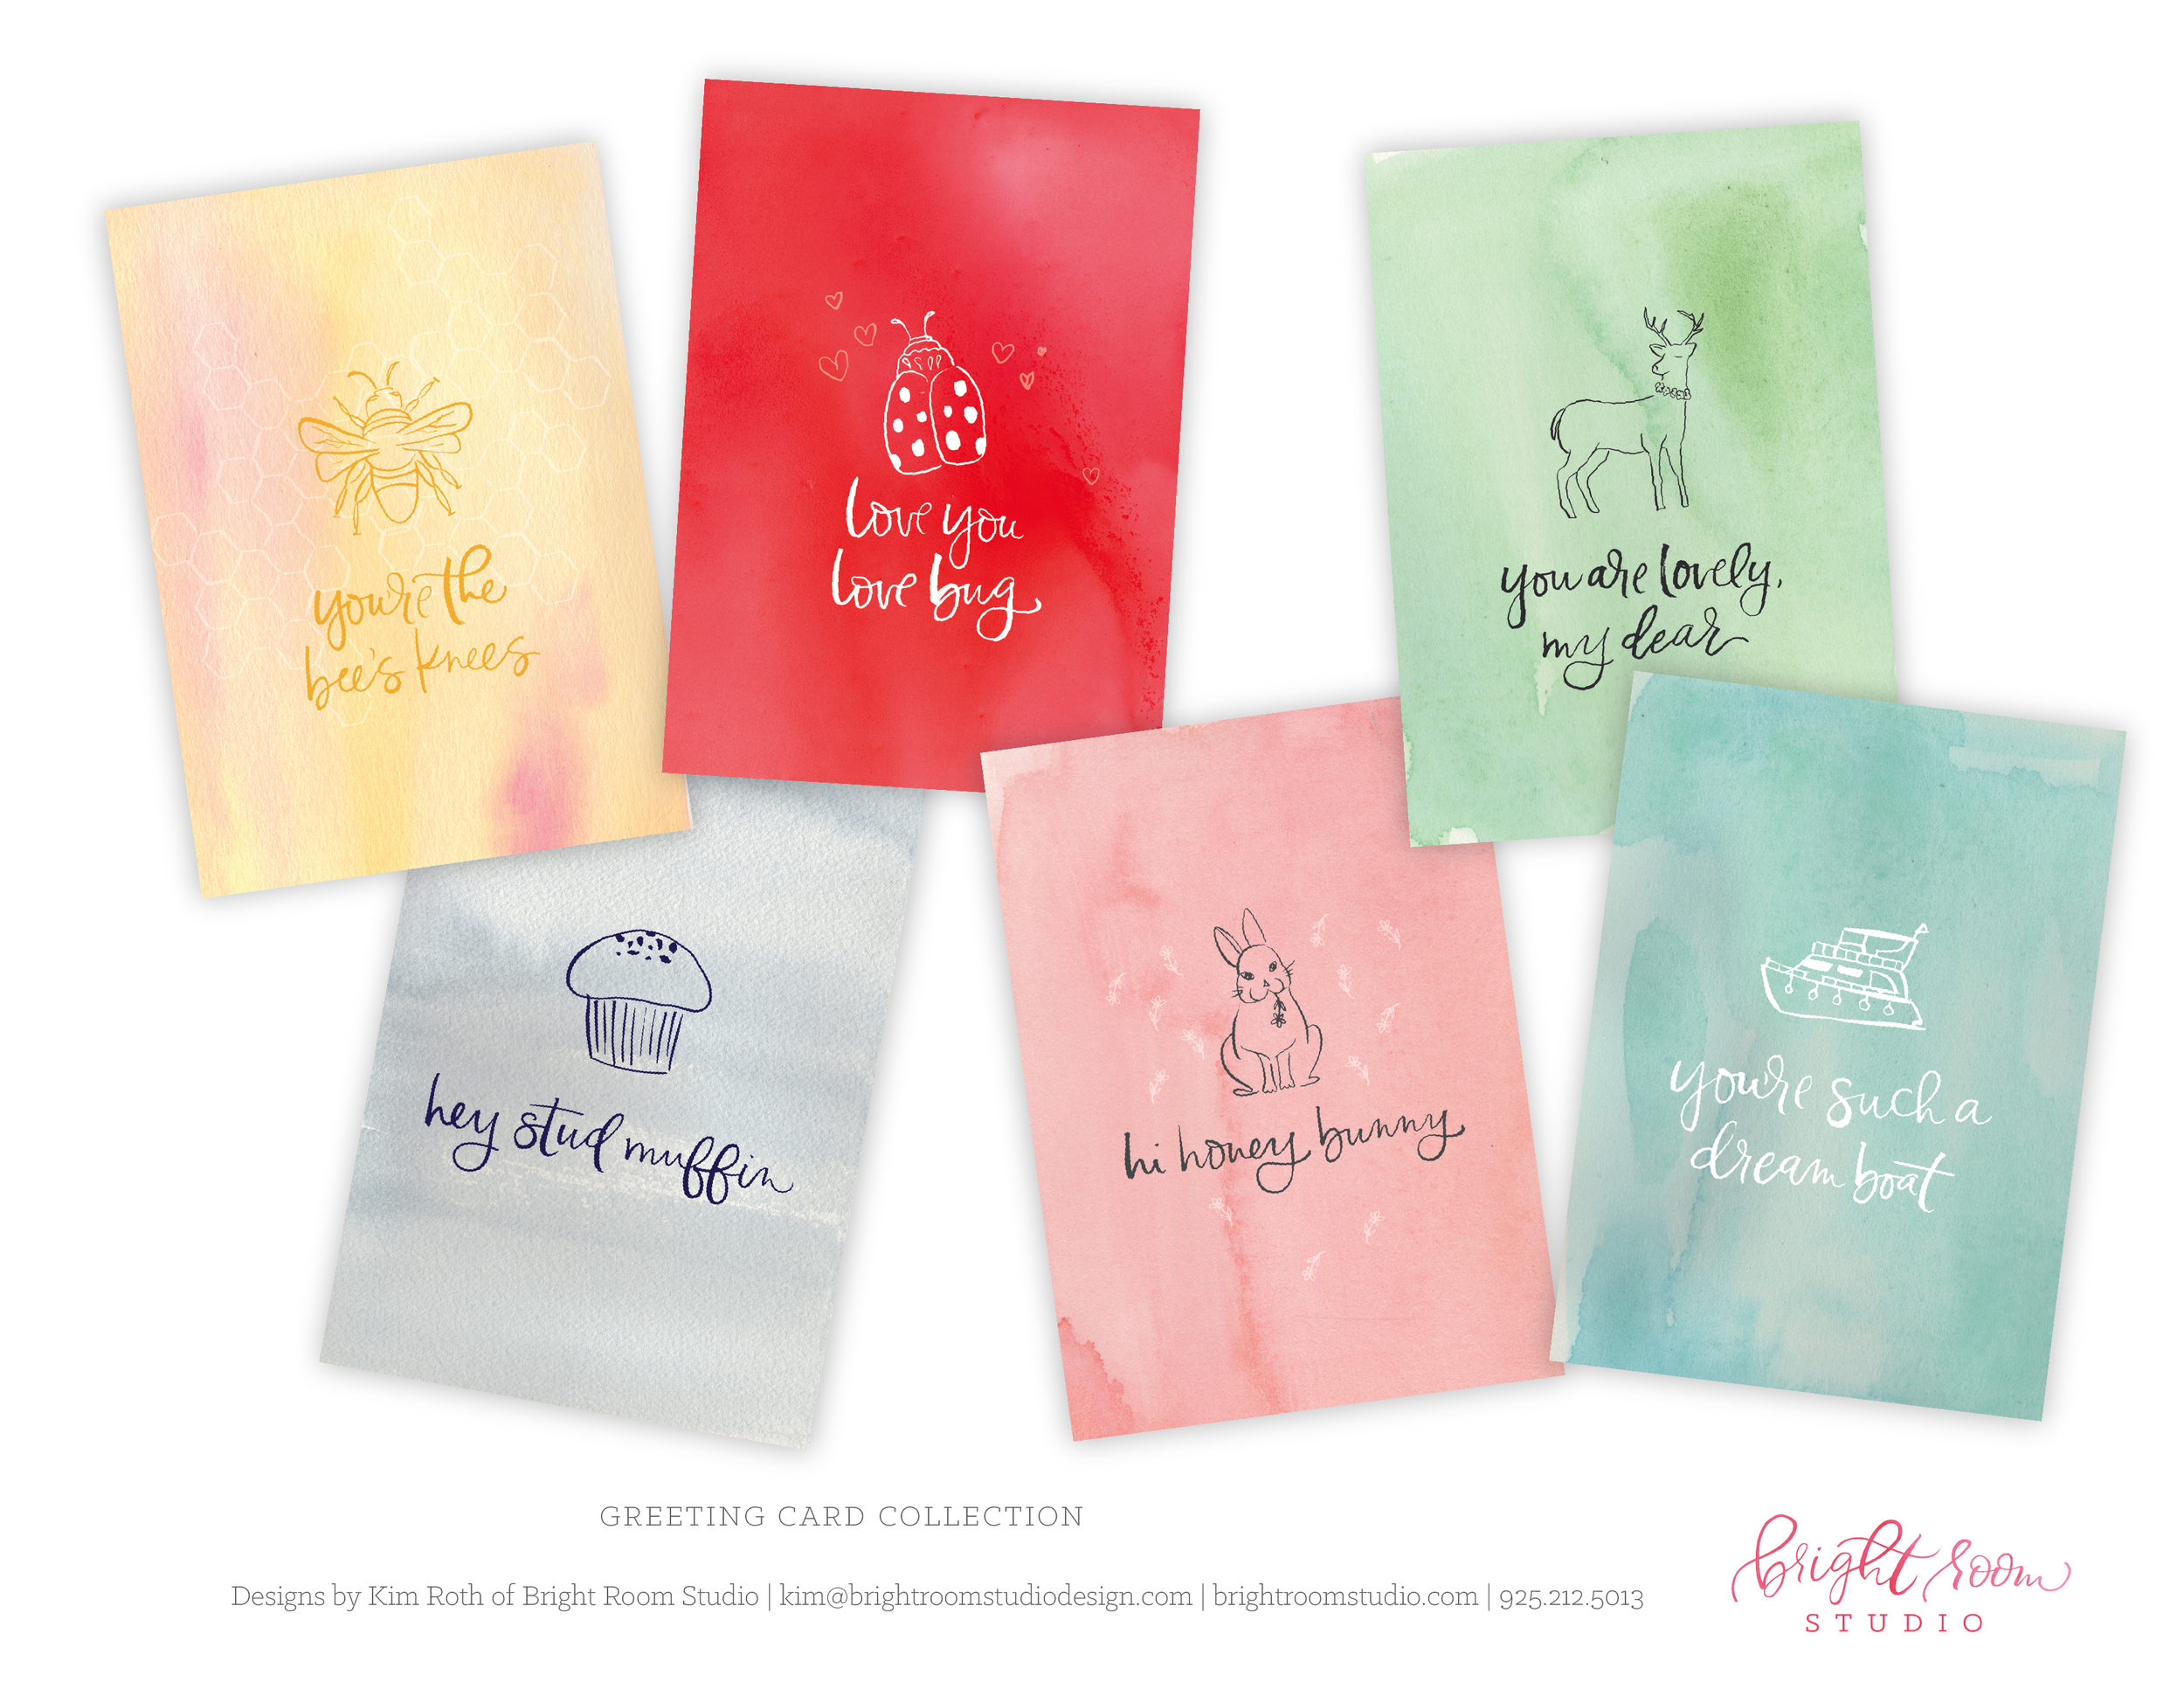 Watercolor, hand-lettering and illustration for cute greeting cards